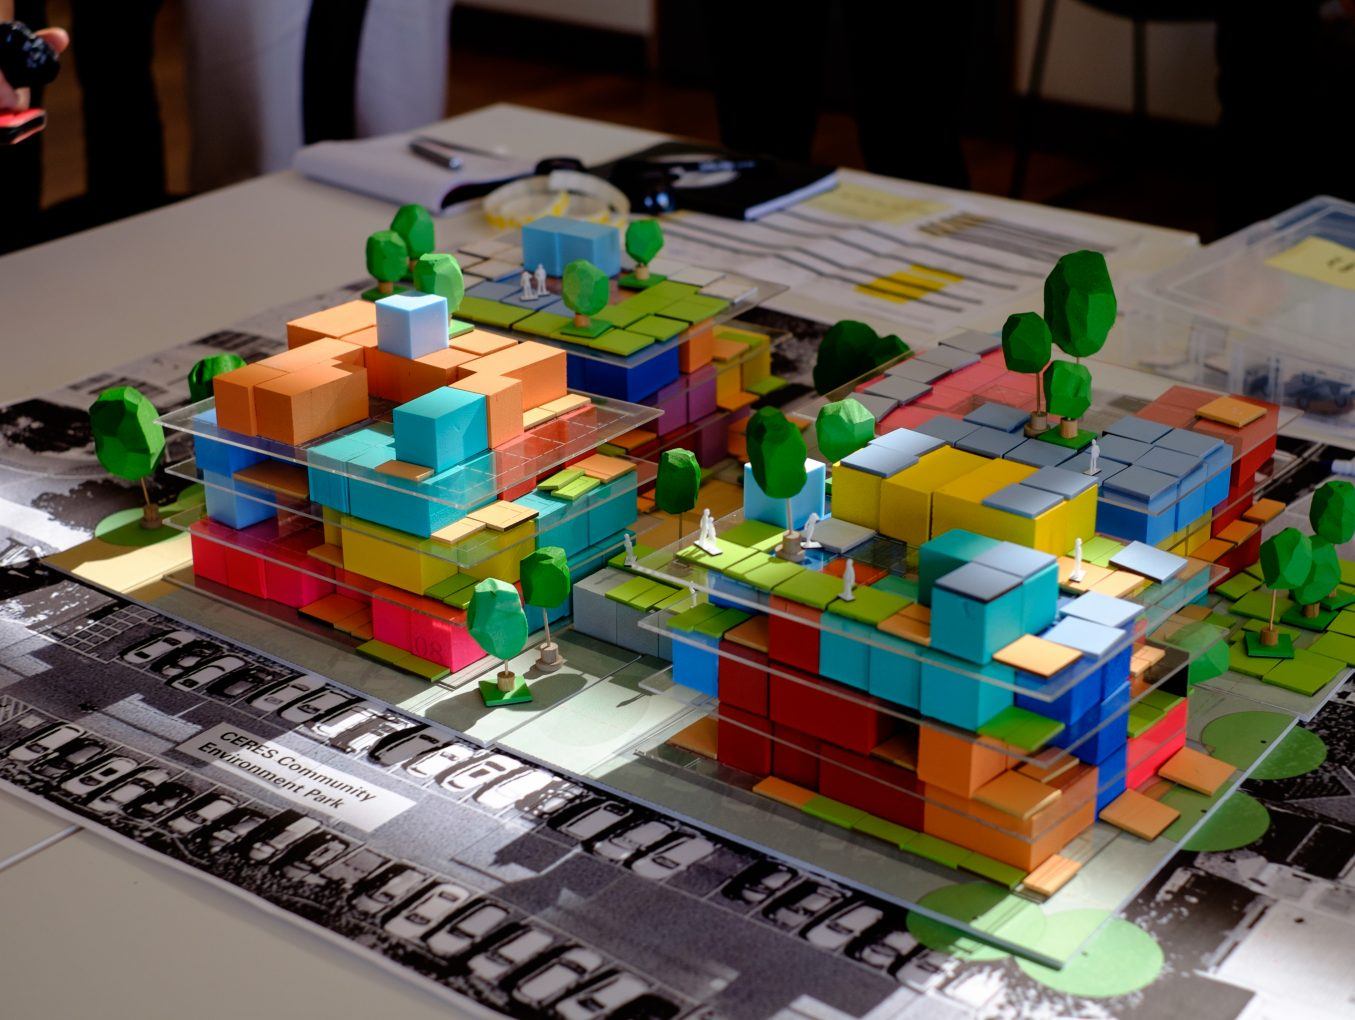 Melbourne Design Week: Citizen-led housing developments workshop - March 18